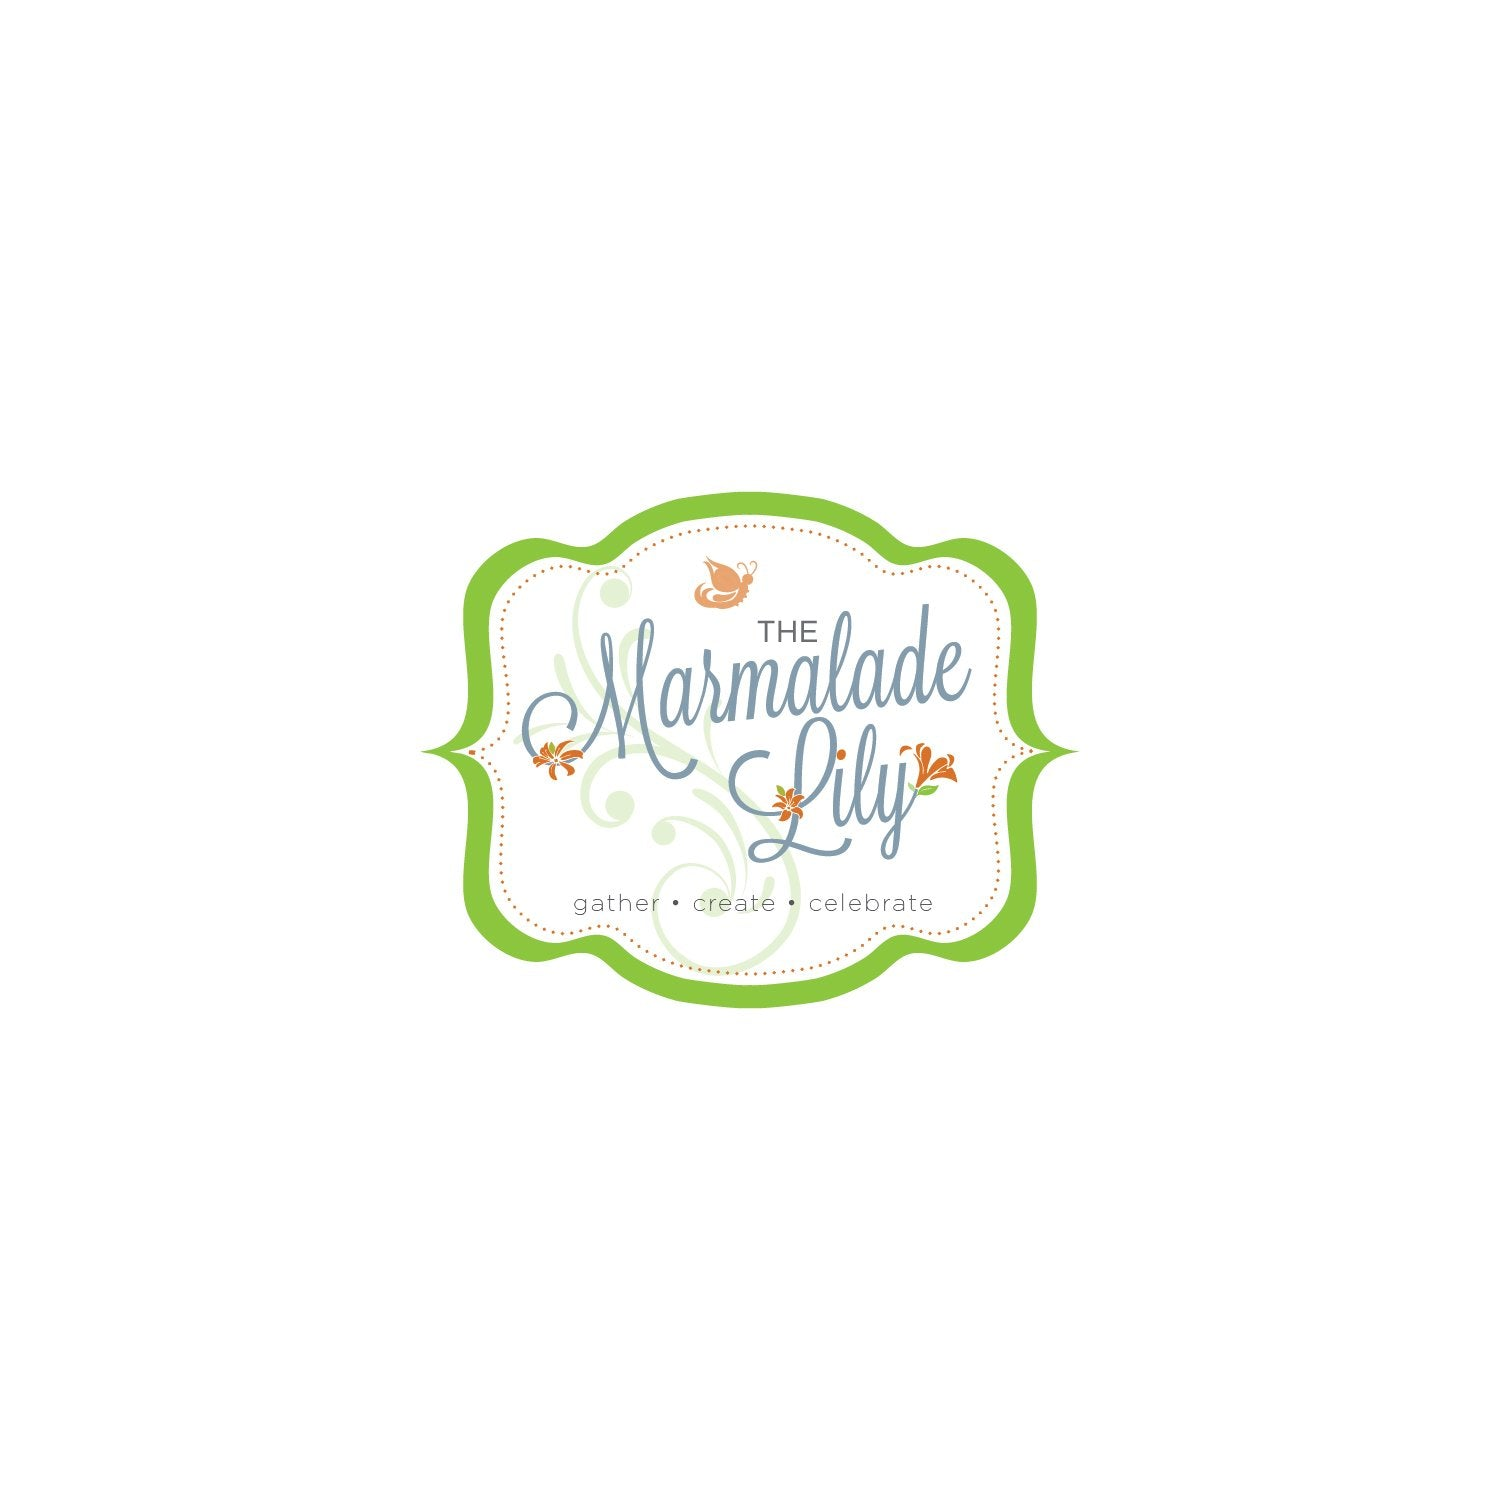 leanne and company marmalade lily logo design charlotte nc